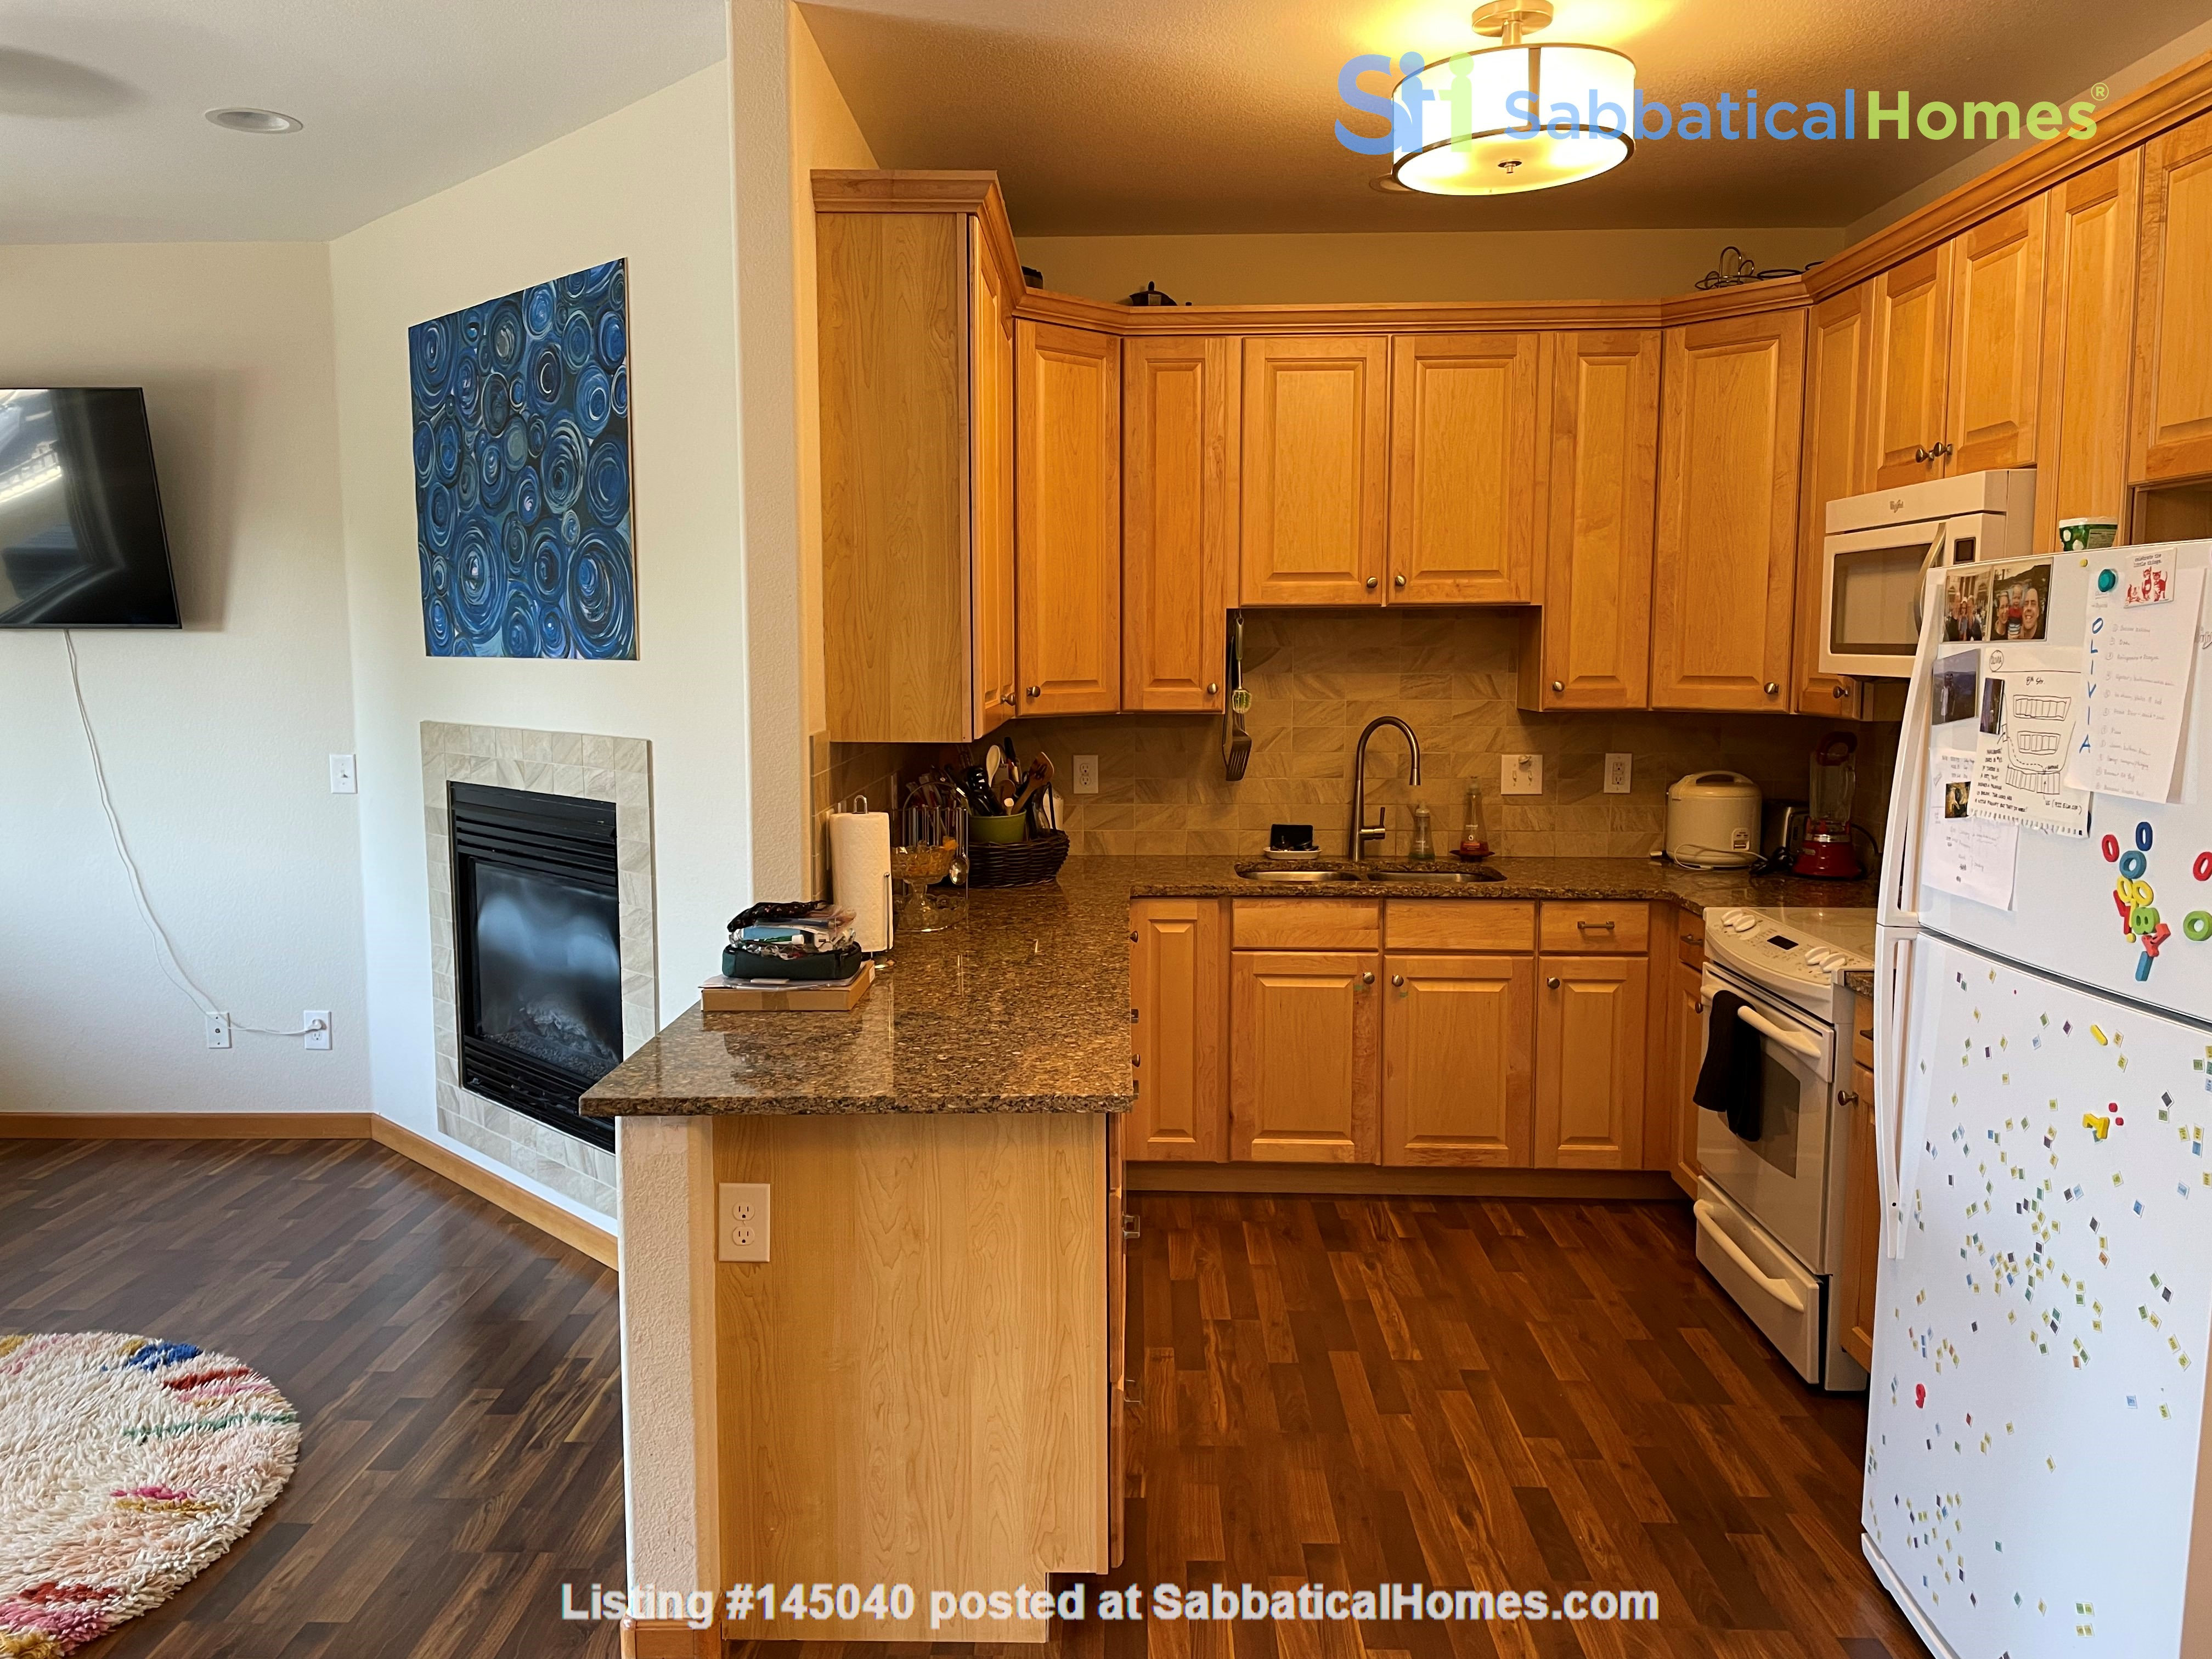 Hiking and biking paradise in beautiful Golden, Colorado - Spring 2022 swap Home Exchange in Golden 4